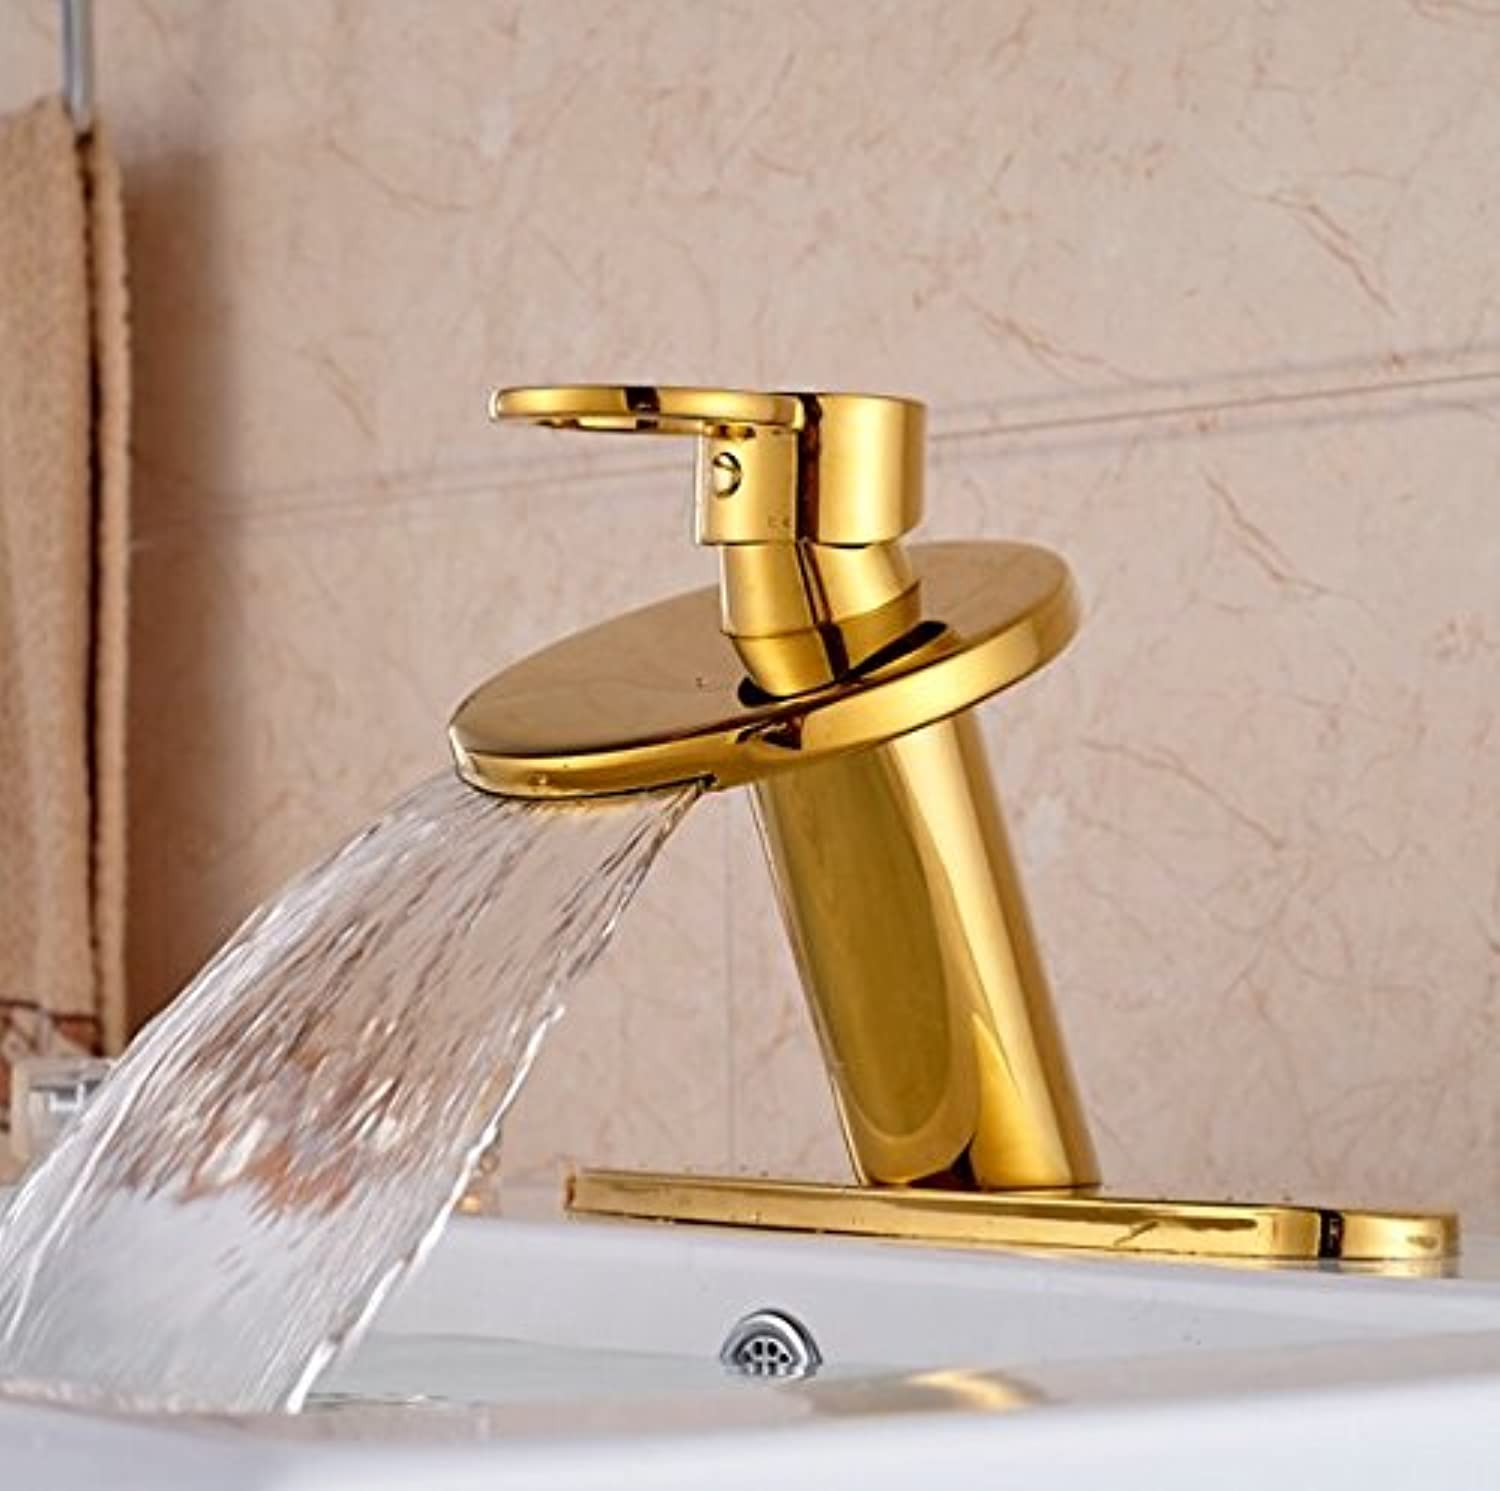 GOWE Brass golden Deck Mount Waterfall Bathroom Sink Basin Faucet Single Lever with 3 Hole Cover Plate